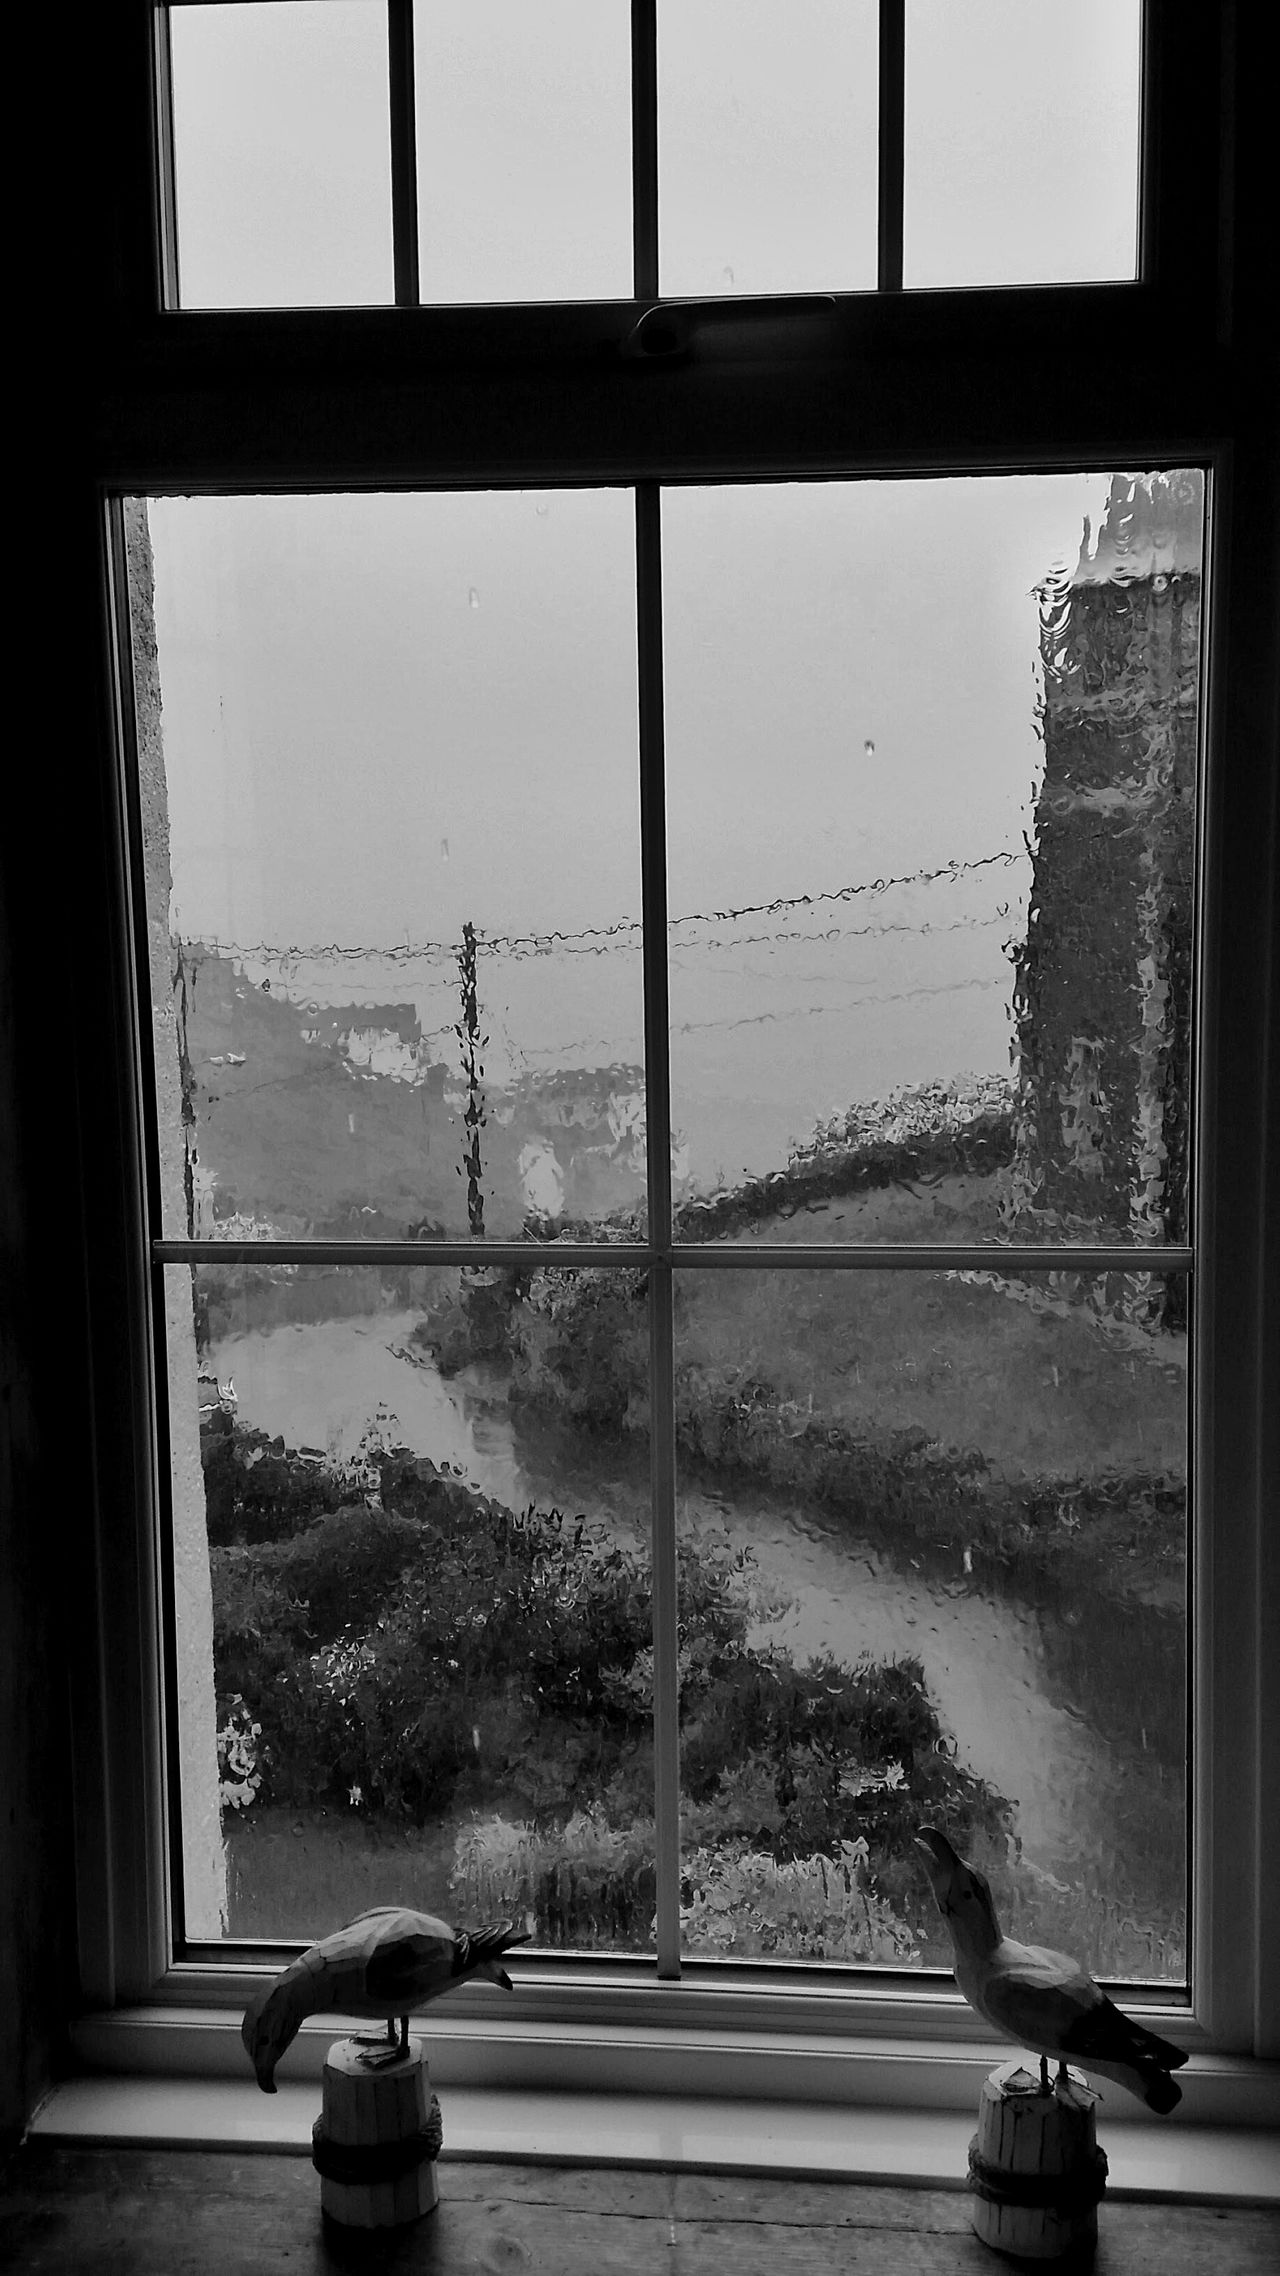 'I Love A Rainy Night' ☁ https://youtu.be/ebt0BR5wHYs ⚡ Lyricalartistry Bnw_friday_eyeemchallenge Roadscapes Just over 5 hours left to enter. 😄👍 Rainy Days☔ Holidays! Melancholic Landscapes England 🌹 Devon Coastline EyeEm Masterclass Eye4photography  Exceptional Photographs Mobilephotography Mobile Photography EyeEm Best Edits EyeEm_crew Striving For Excellence Inspiration Rain On The Window Poetry In Pictures Black And White Black & White Black And White Landscape World Photography Day Black And White Collection